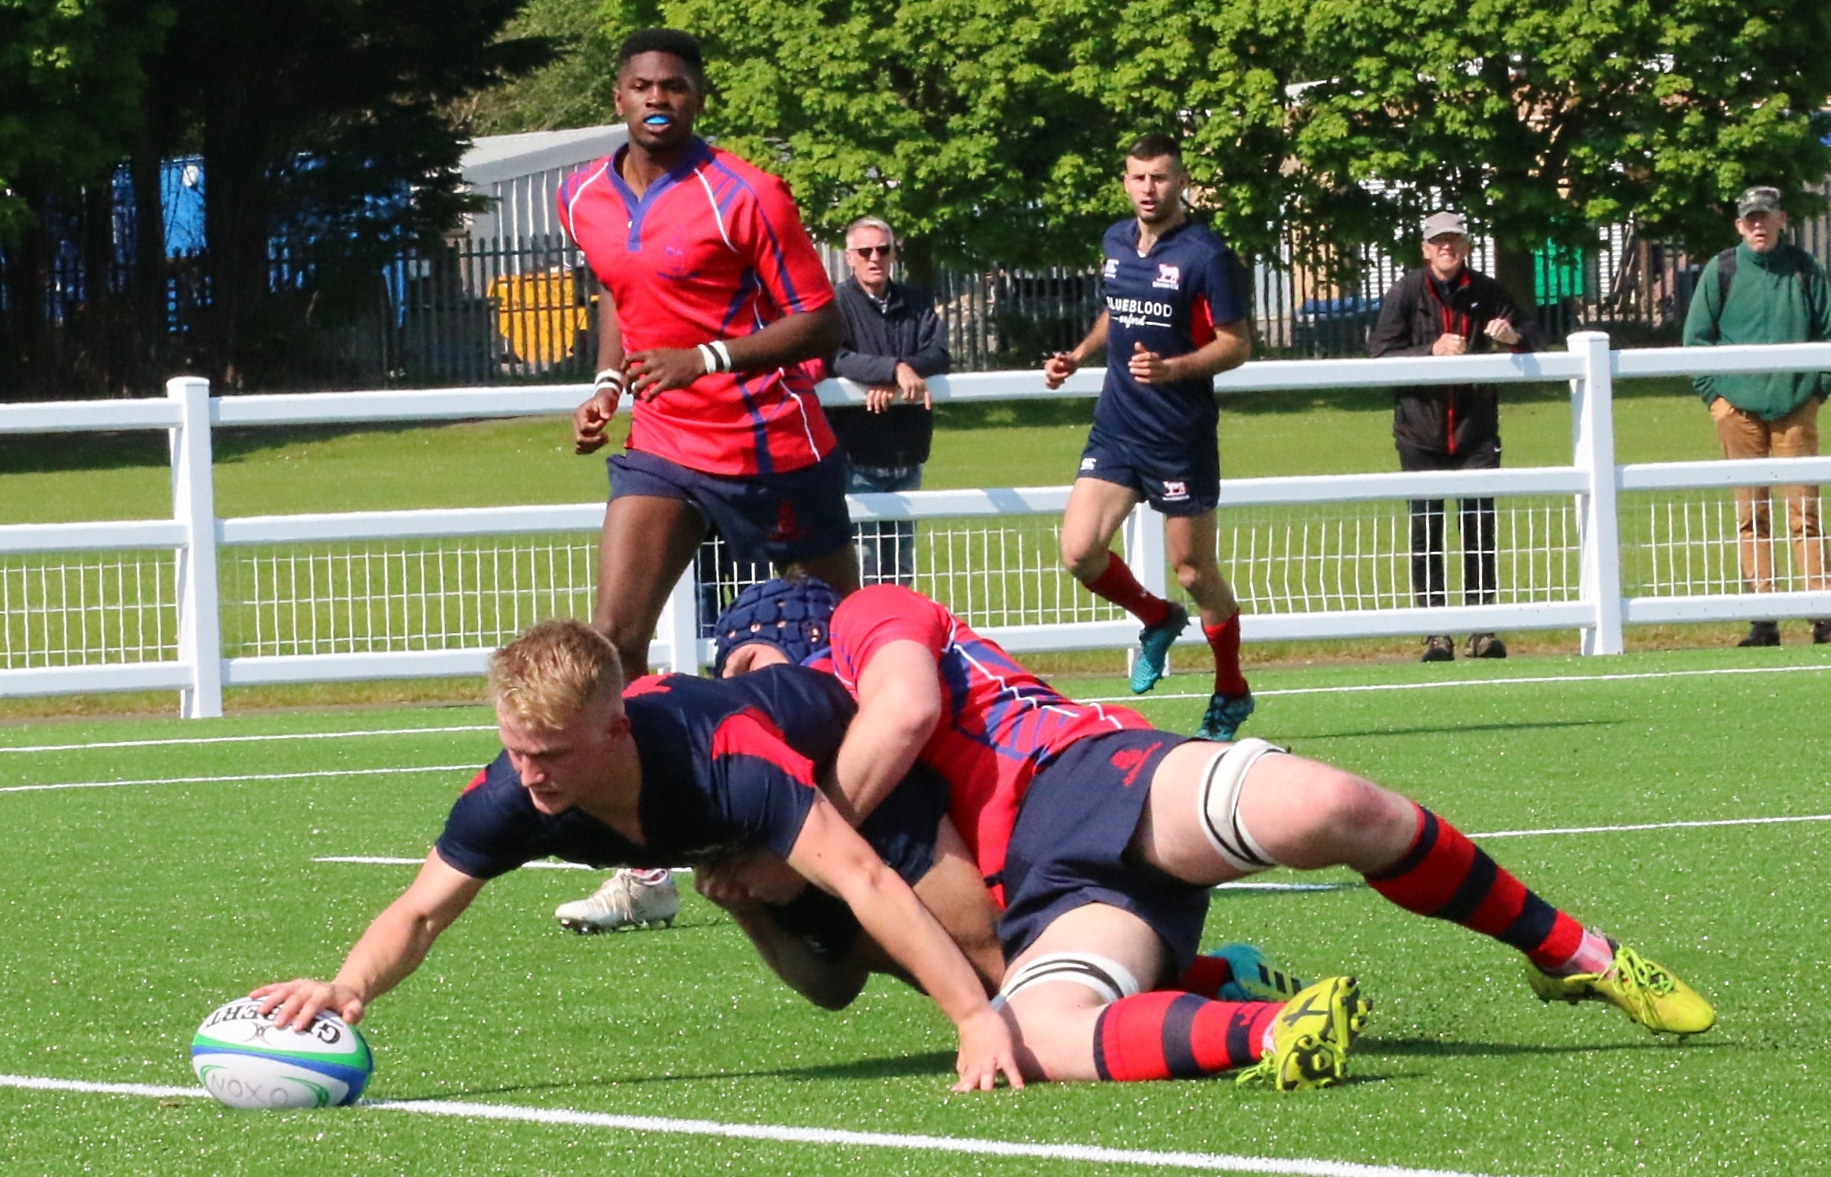 Fly-half Finn Pietersen stretches for the bonus point to put Oxfordshire 24-3 in front against North Midlands Picture: Simon Grieve